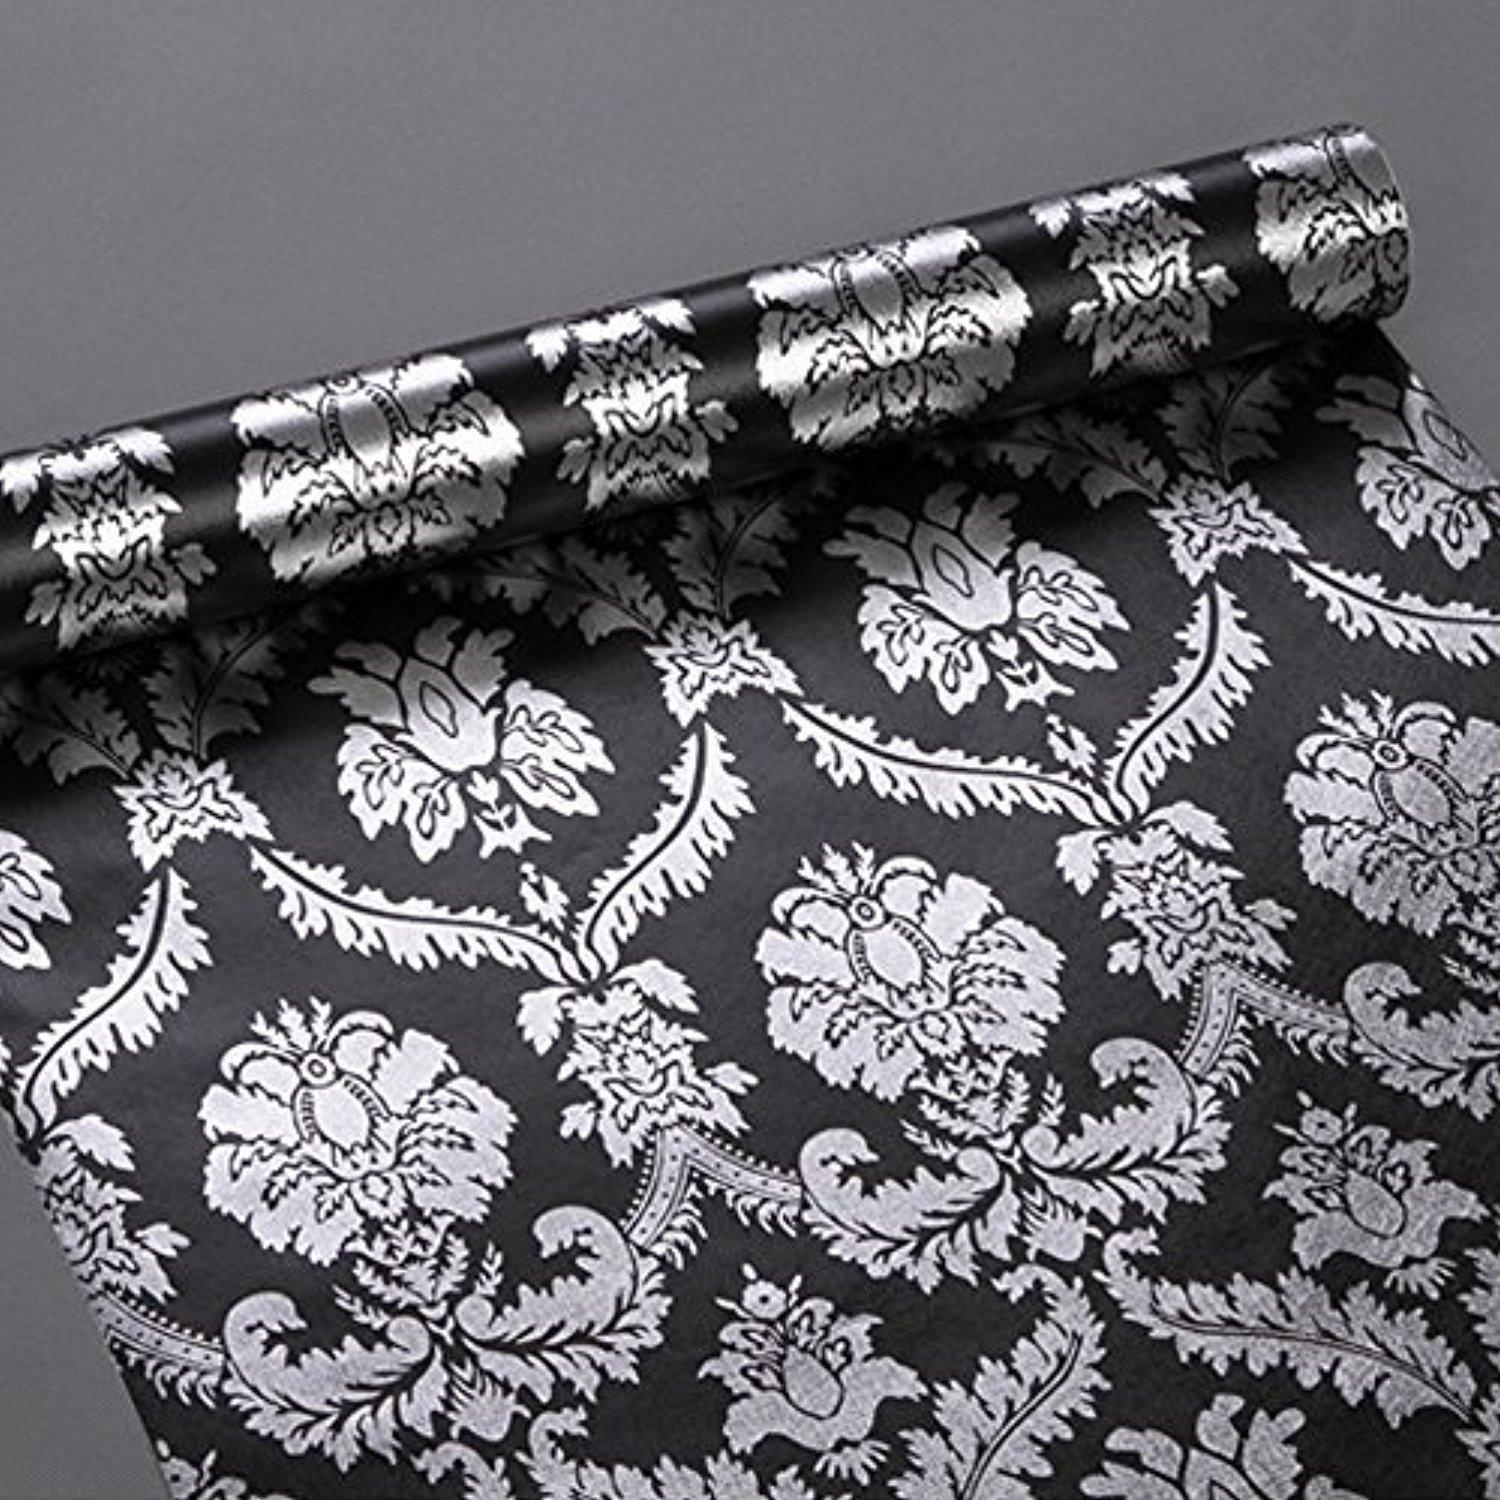 Online Store: Simplelife4u Silver Damask Contact Paper Decorative ...